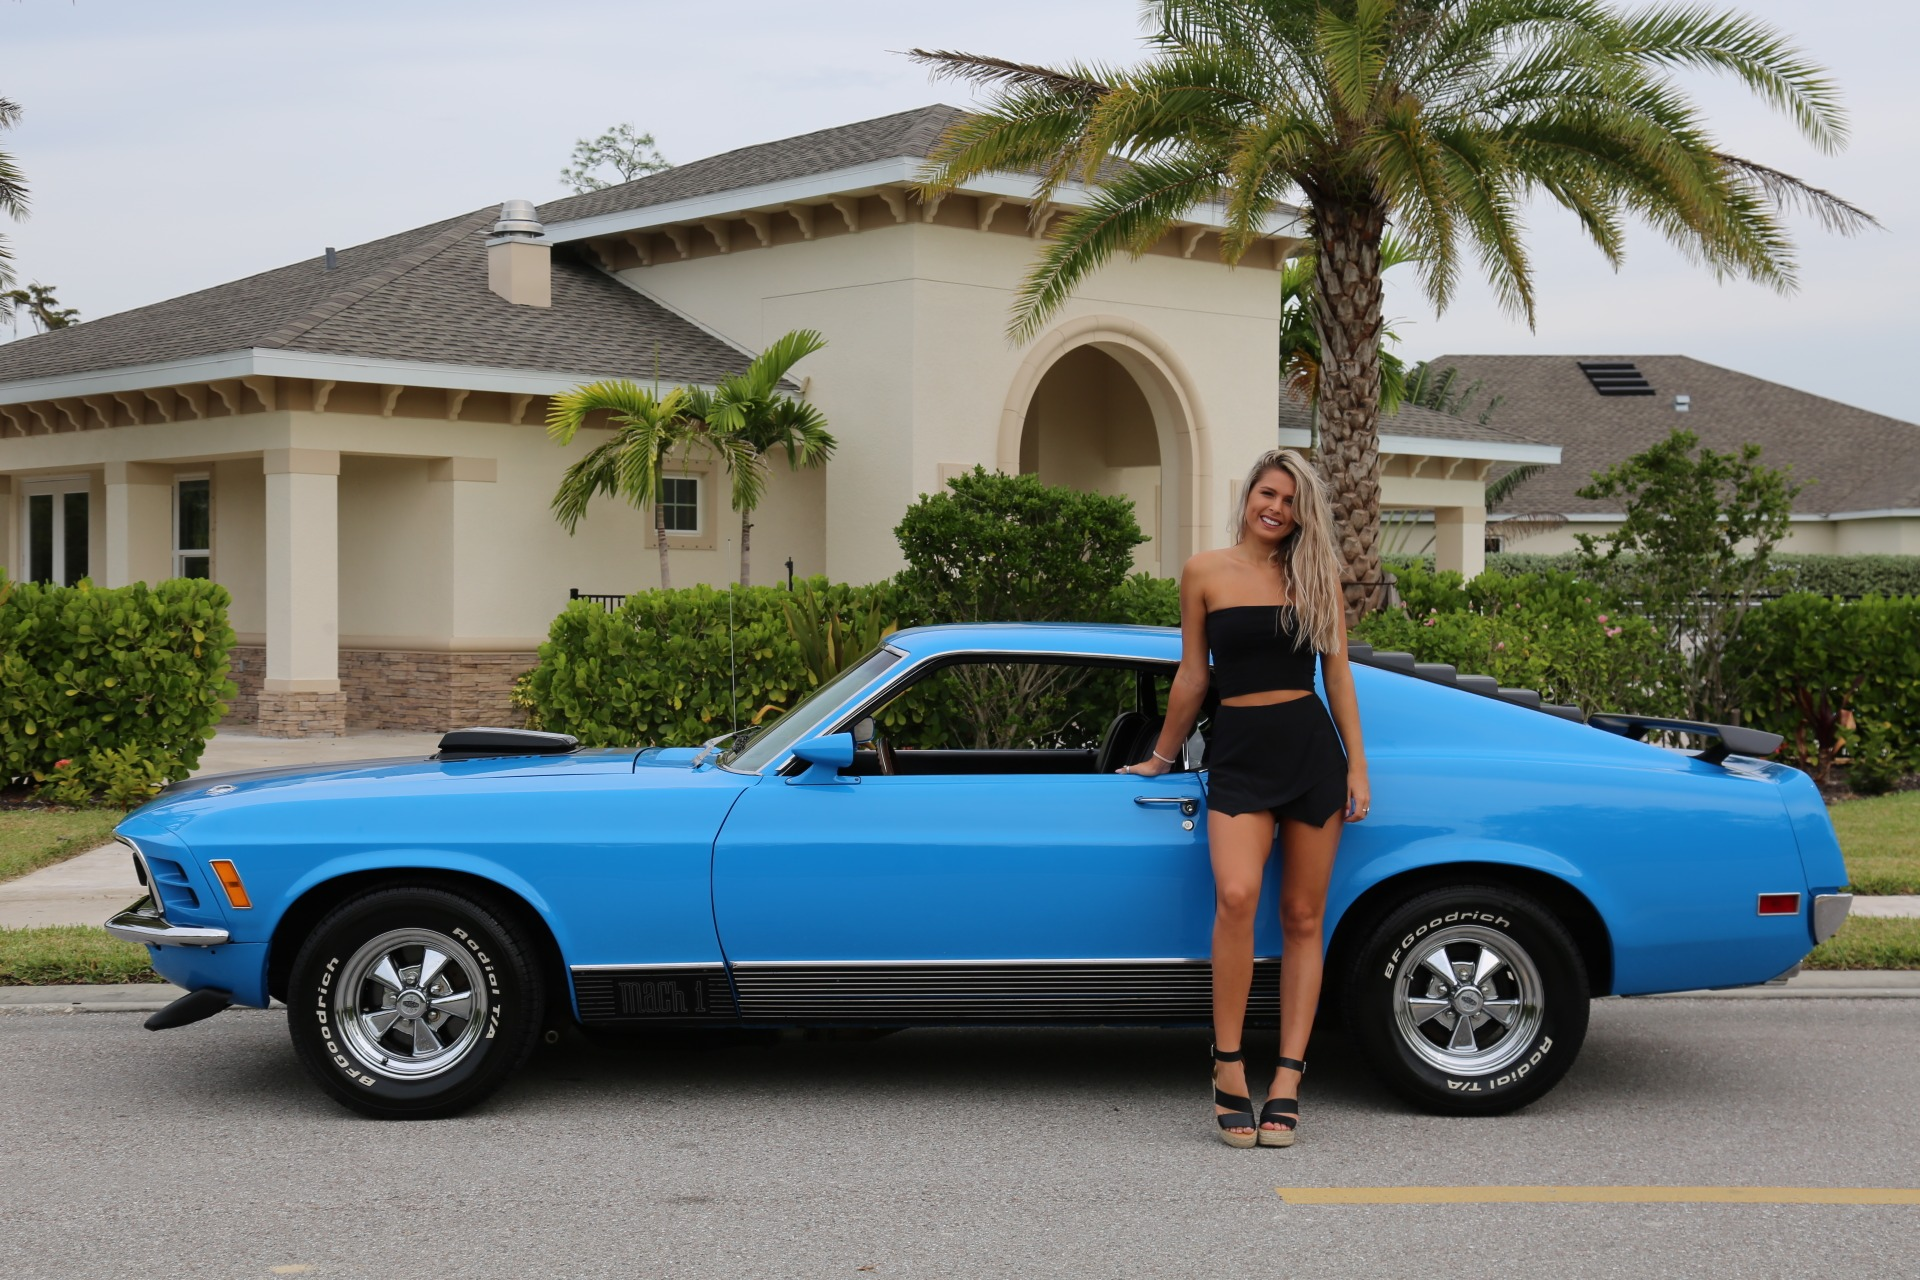 Used 1970 Ford Mustang Mach 1 for sale Sold at Muscle Cars for Sale Inc. in Fort Myers FL 33912 5